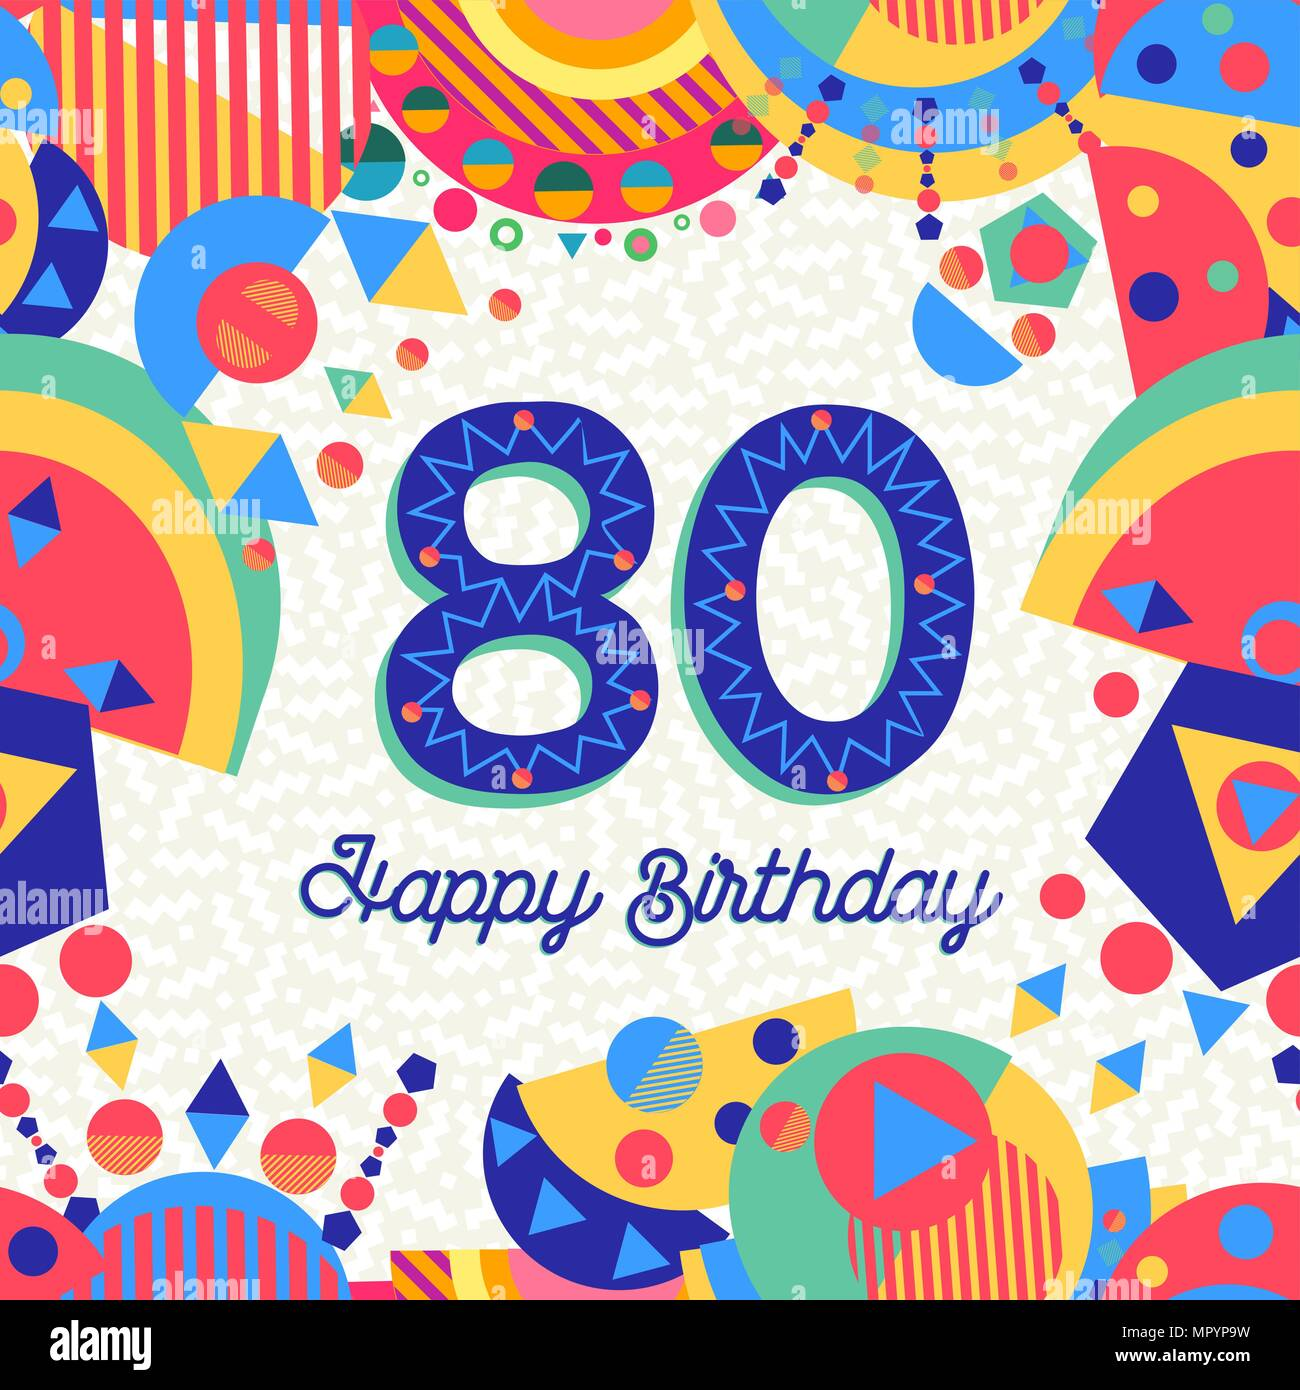 80th Birth Day Stock Photos & 80th Birth Day Stock Images